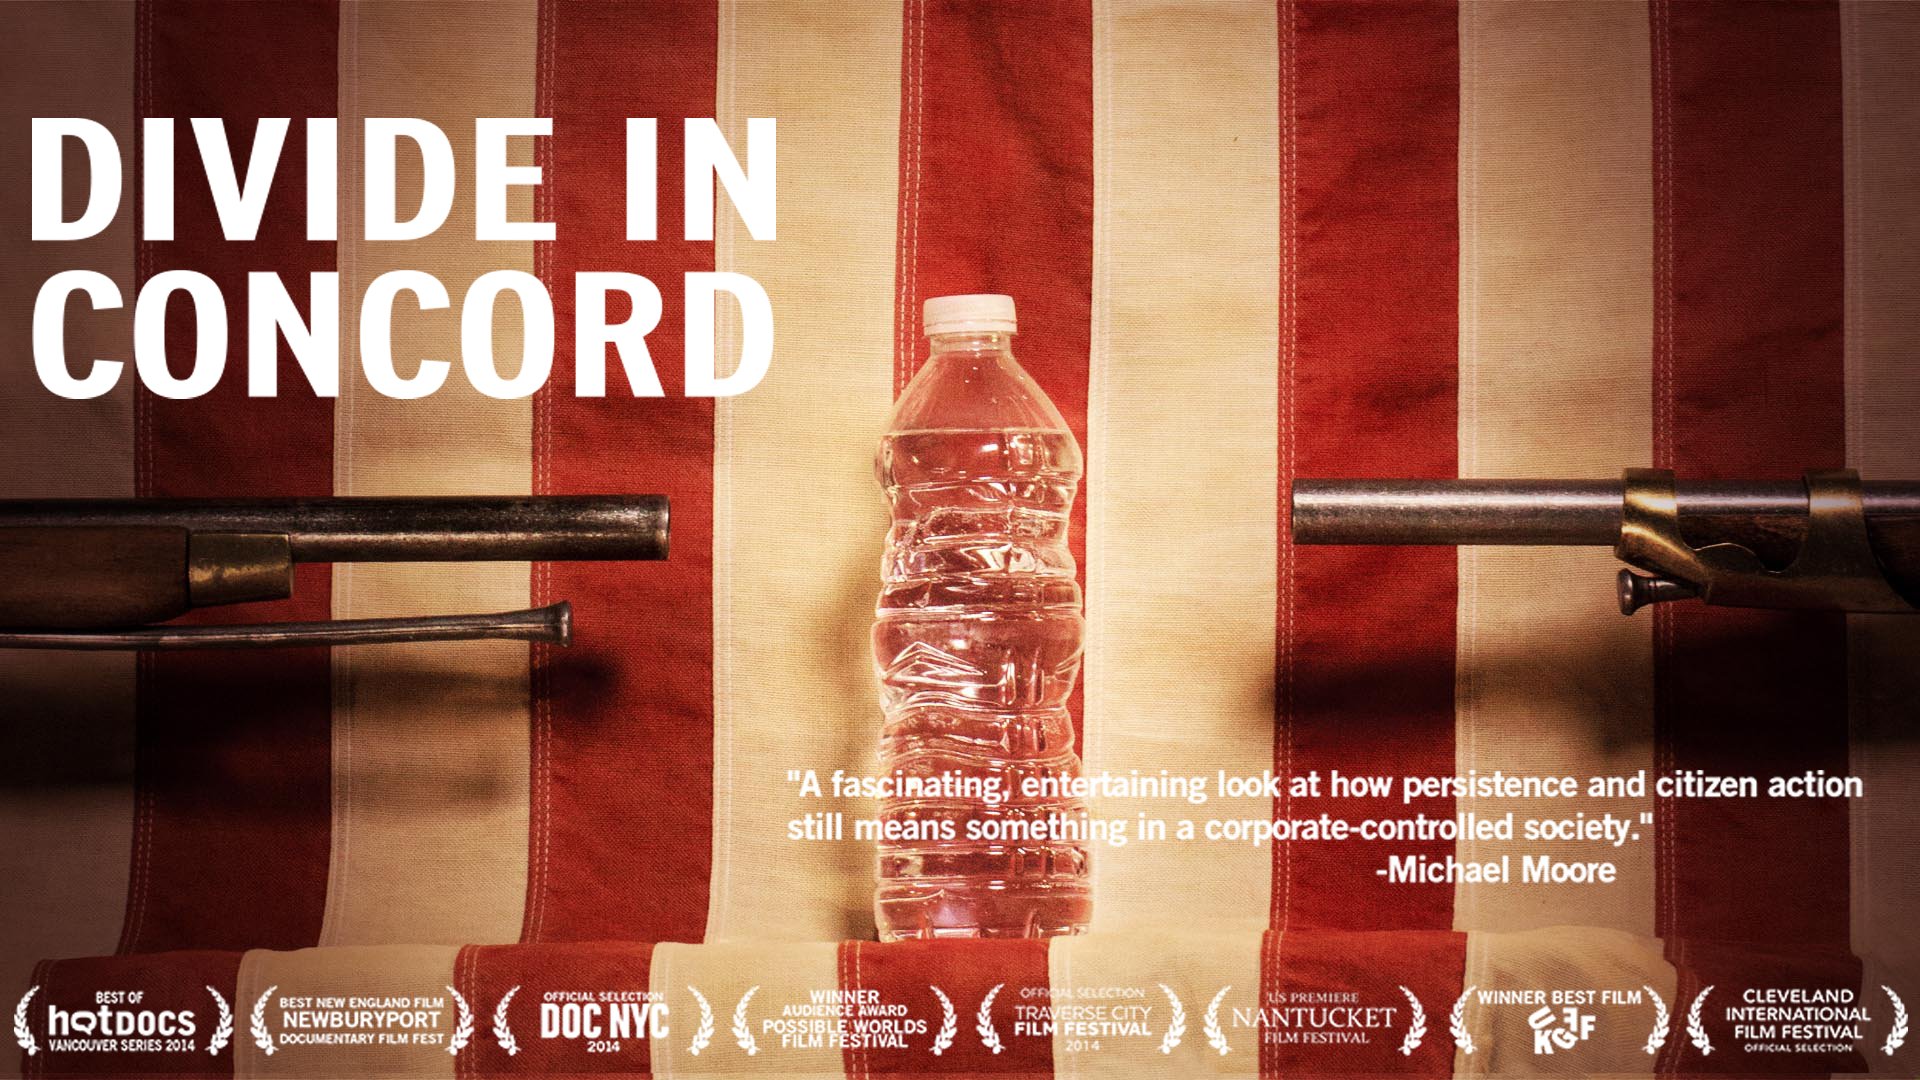 Free Public Film Screening: Divide in Concord